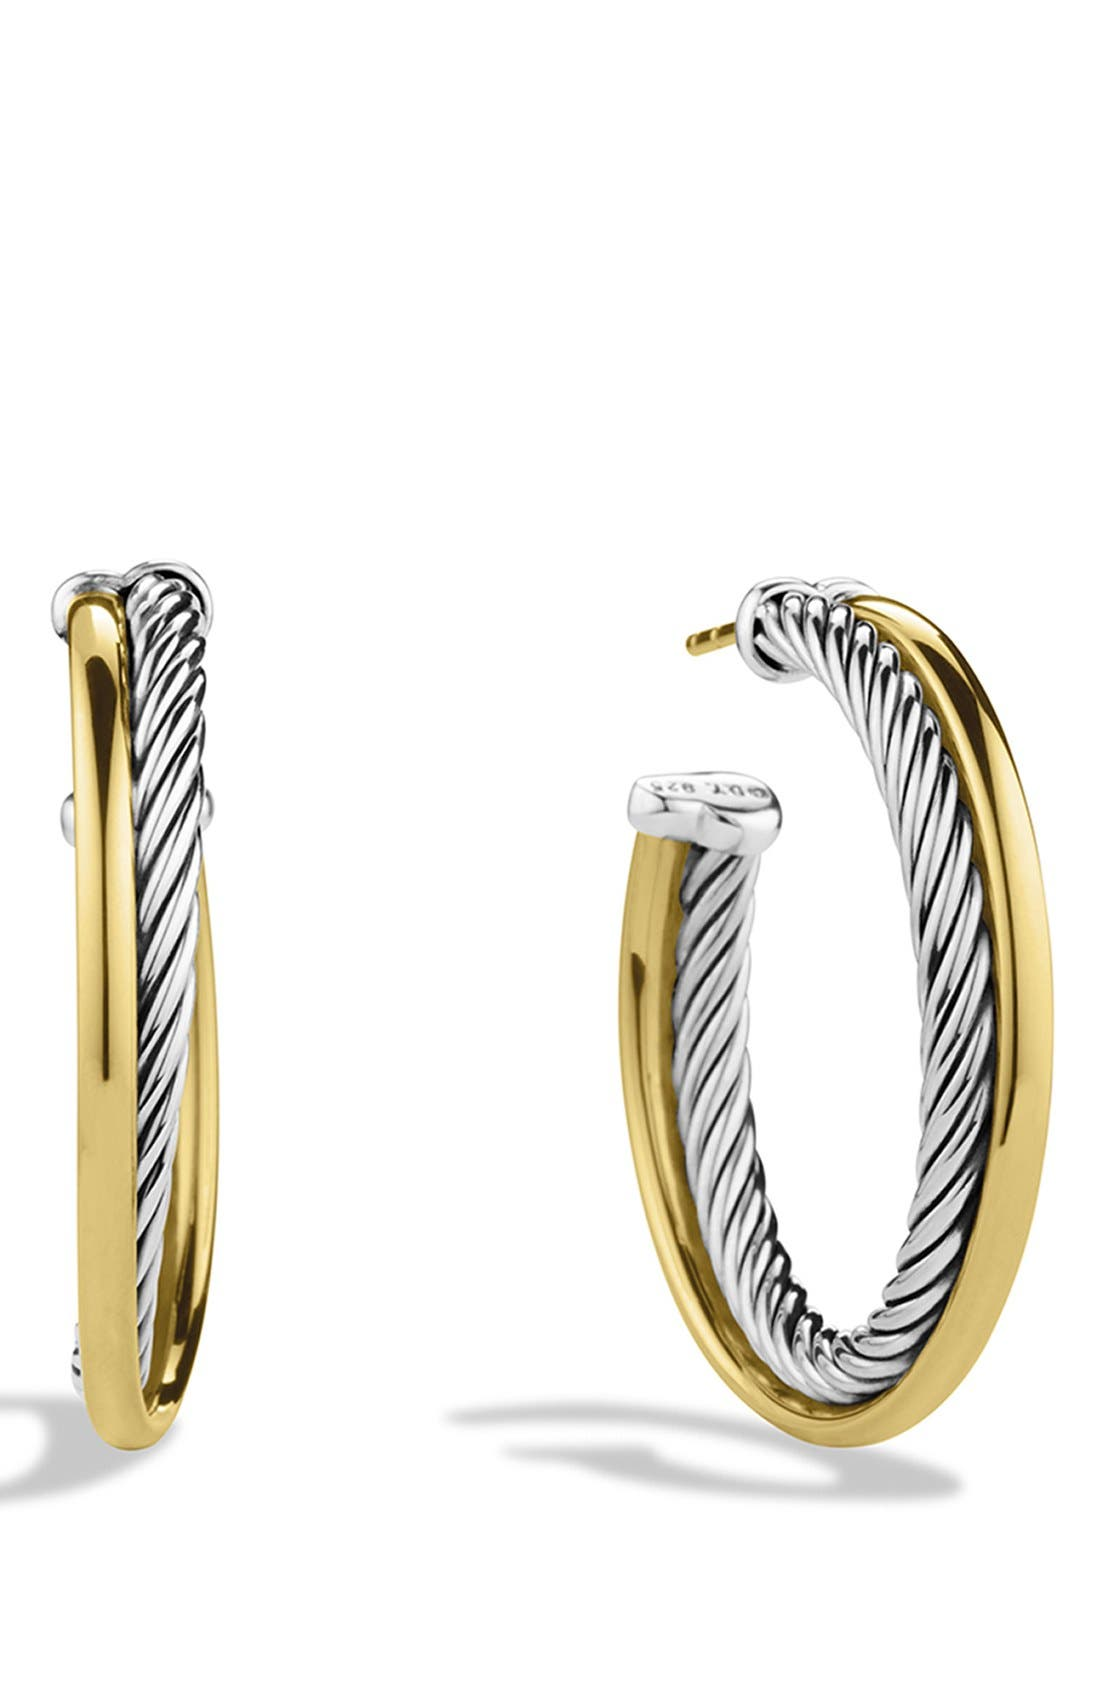 David Yurman 'Crossover' Medium Hoop Earrings with Gold